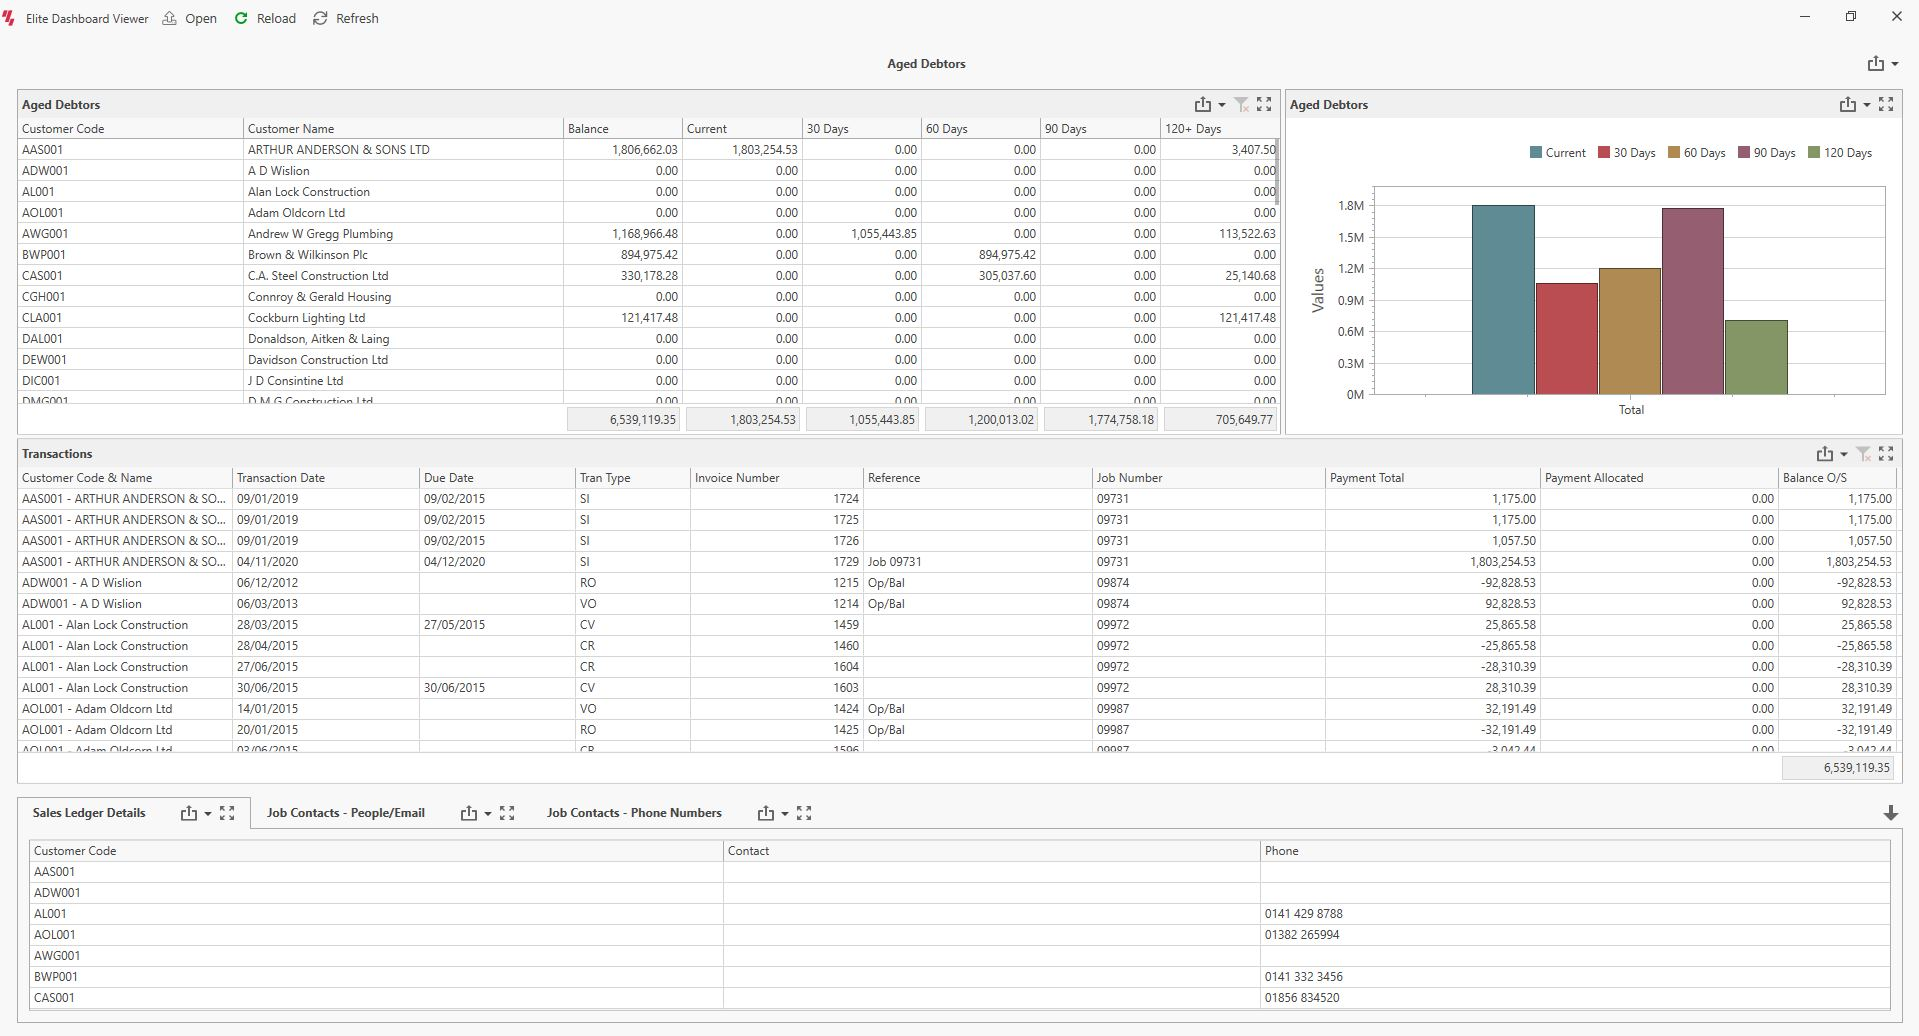 Contract Costing Aged Debtors Dashboard Screenshot